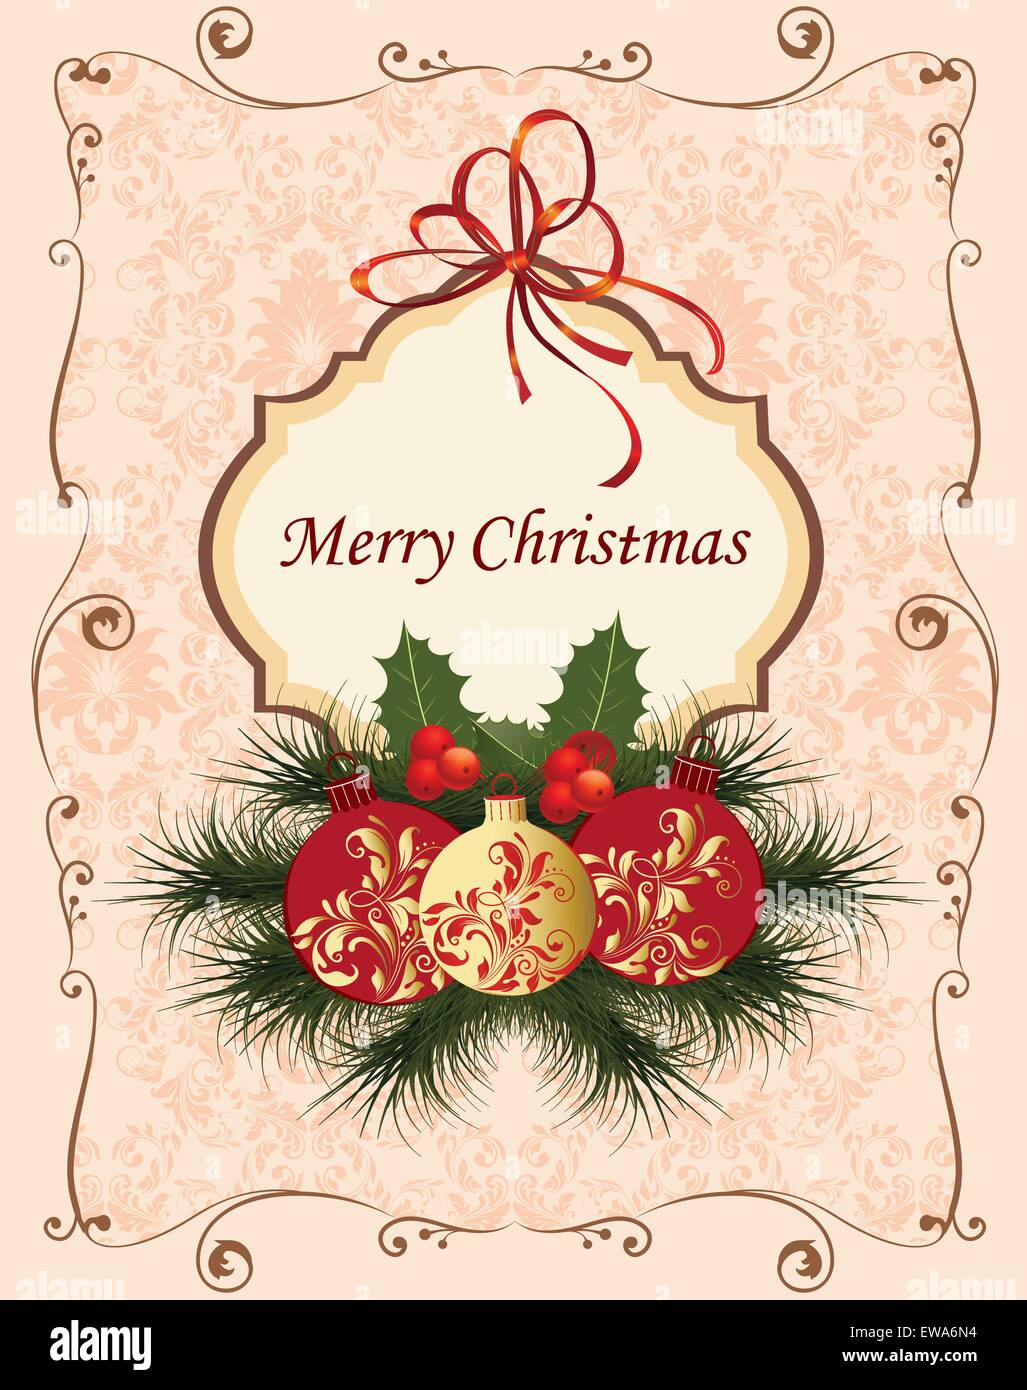 vintage christmas card with ornate elegant retro abstract floral design balls with red and gold flowers and leaves on pale pink and beige background with